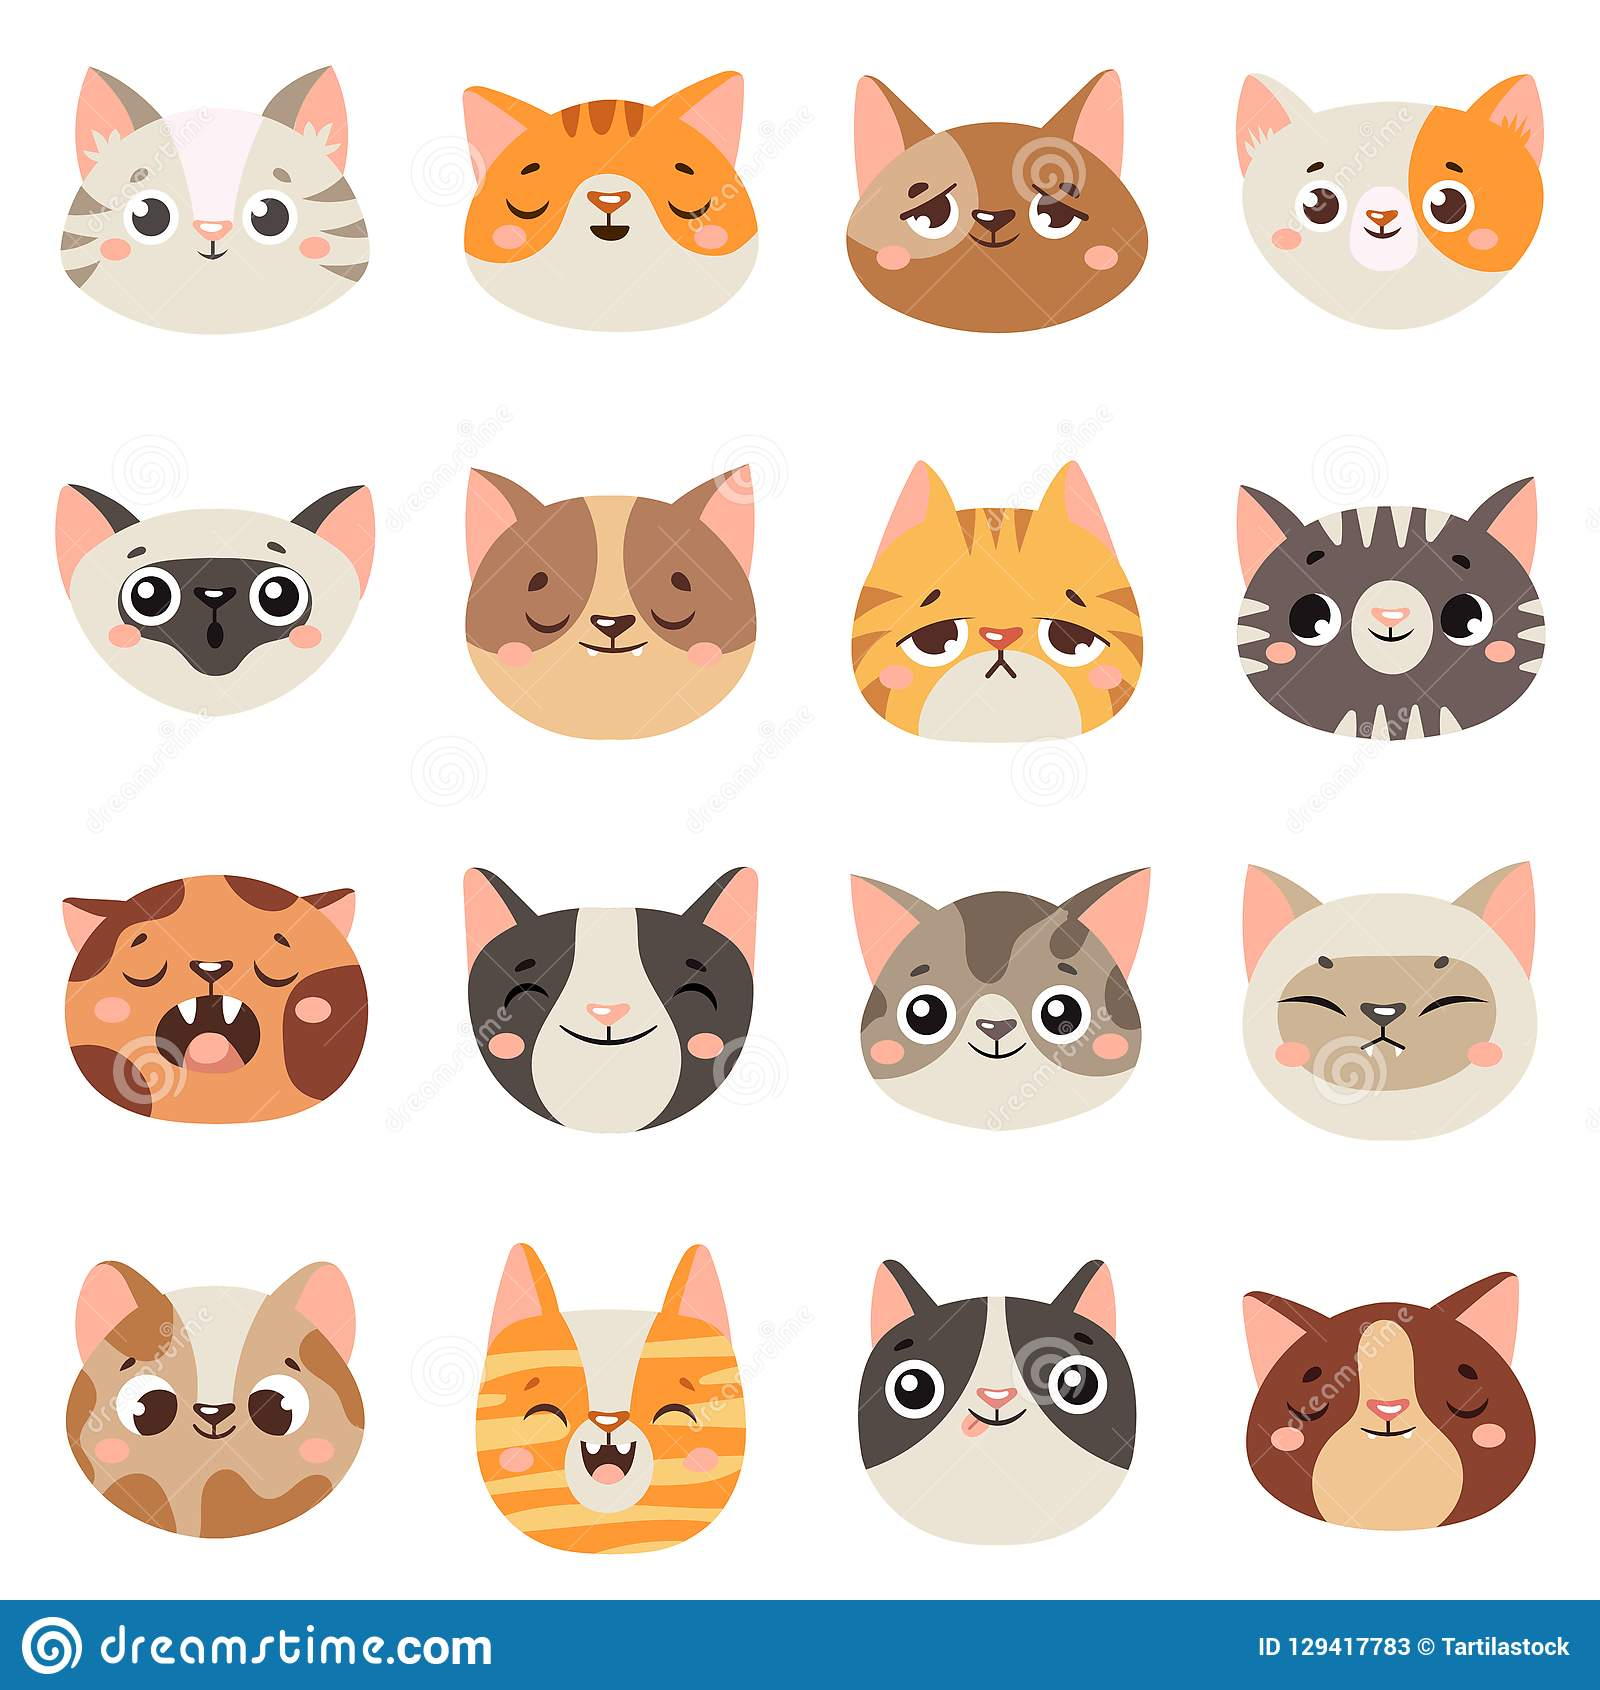 Cute Cats Faces. Happy Animals, Funny Kitten Smiling Mouth ...  Cute Cats Faces...